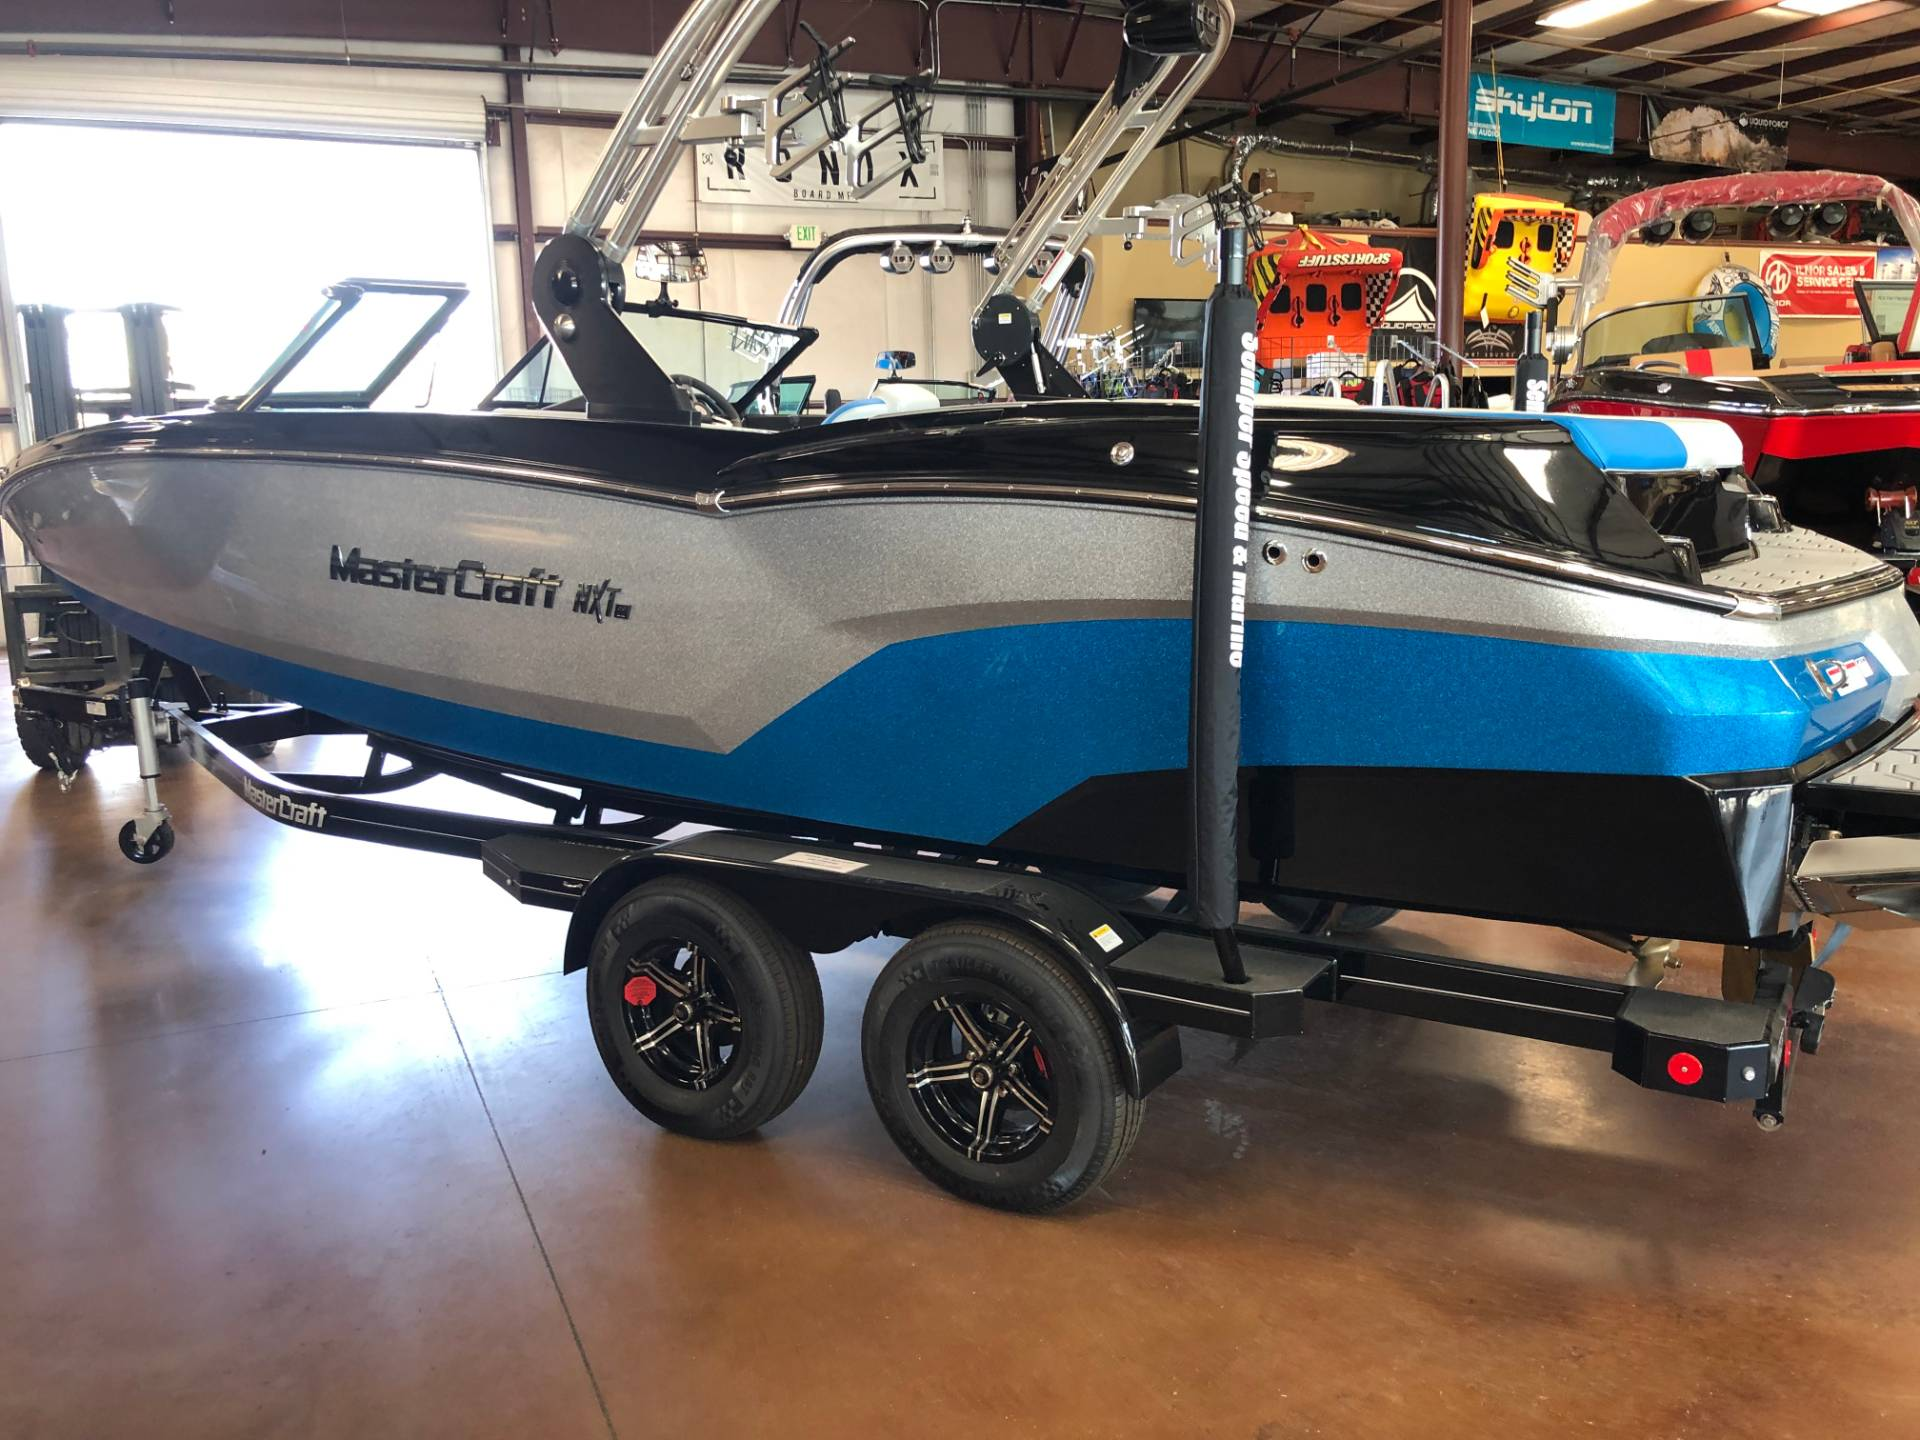 2020 Mastercraft NXT22 in Madera, California - Photo 3